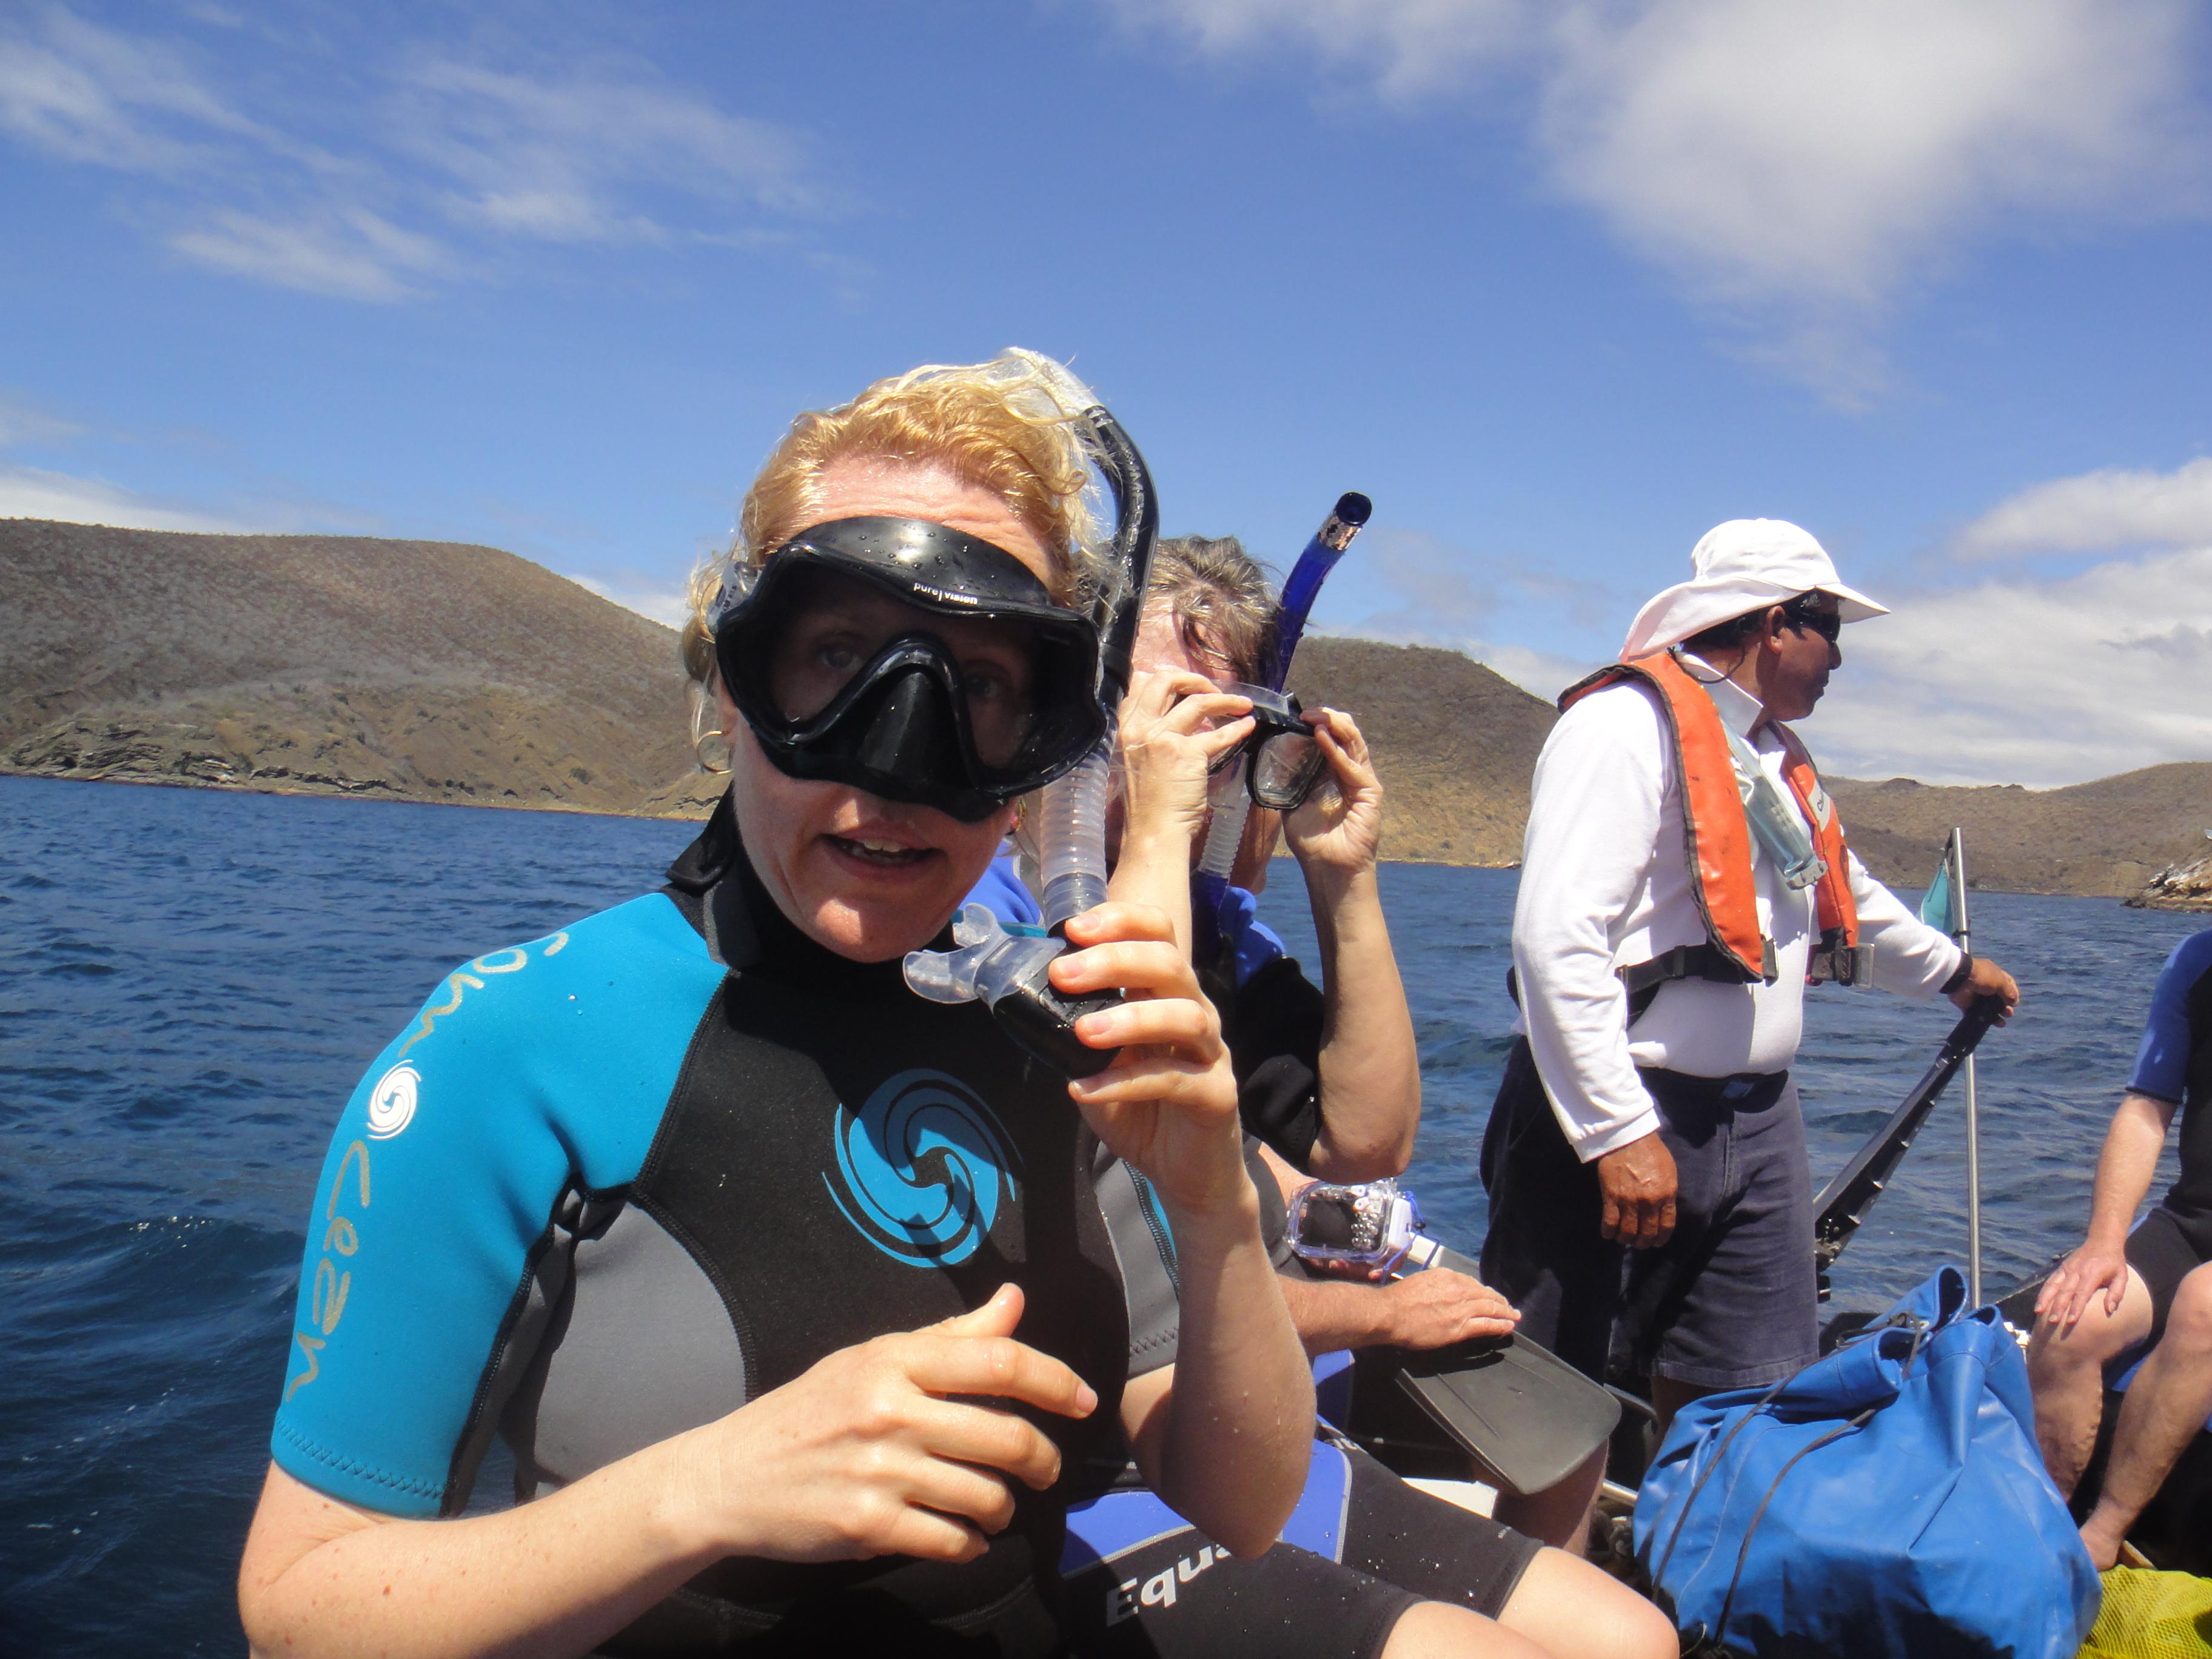 Nic looking oh so attractive in her snorkel gear!